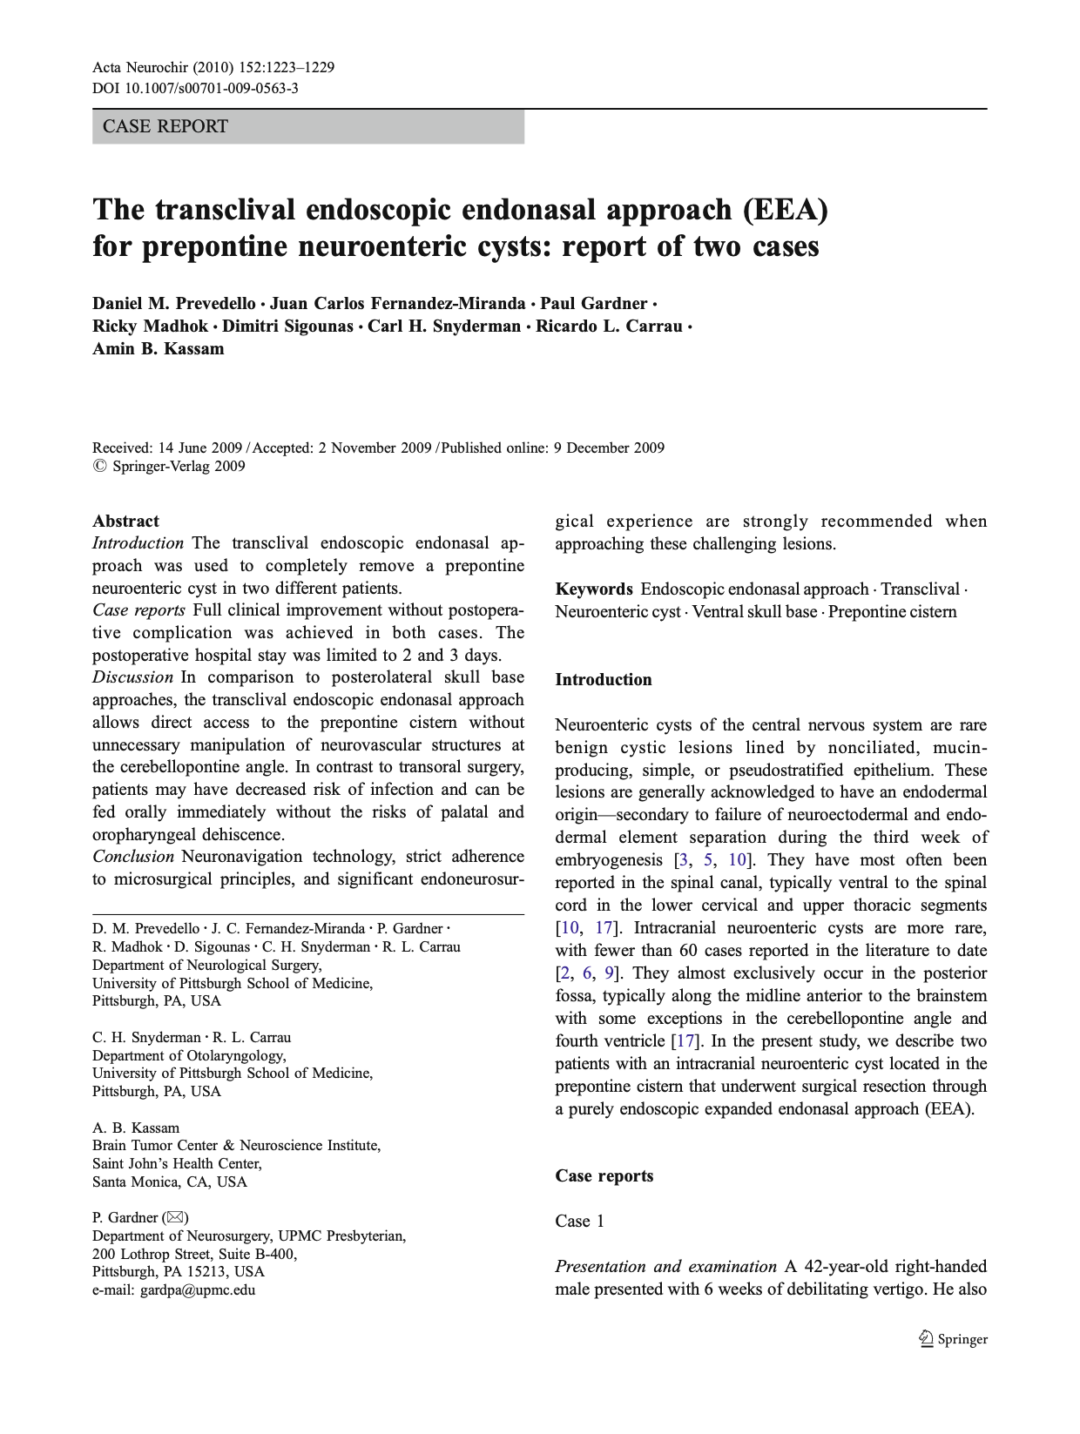 The transclival endoscopic endonasal approach (EEA) for prepontine neuroenteric cysts: report of two cases